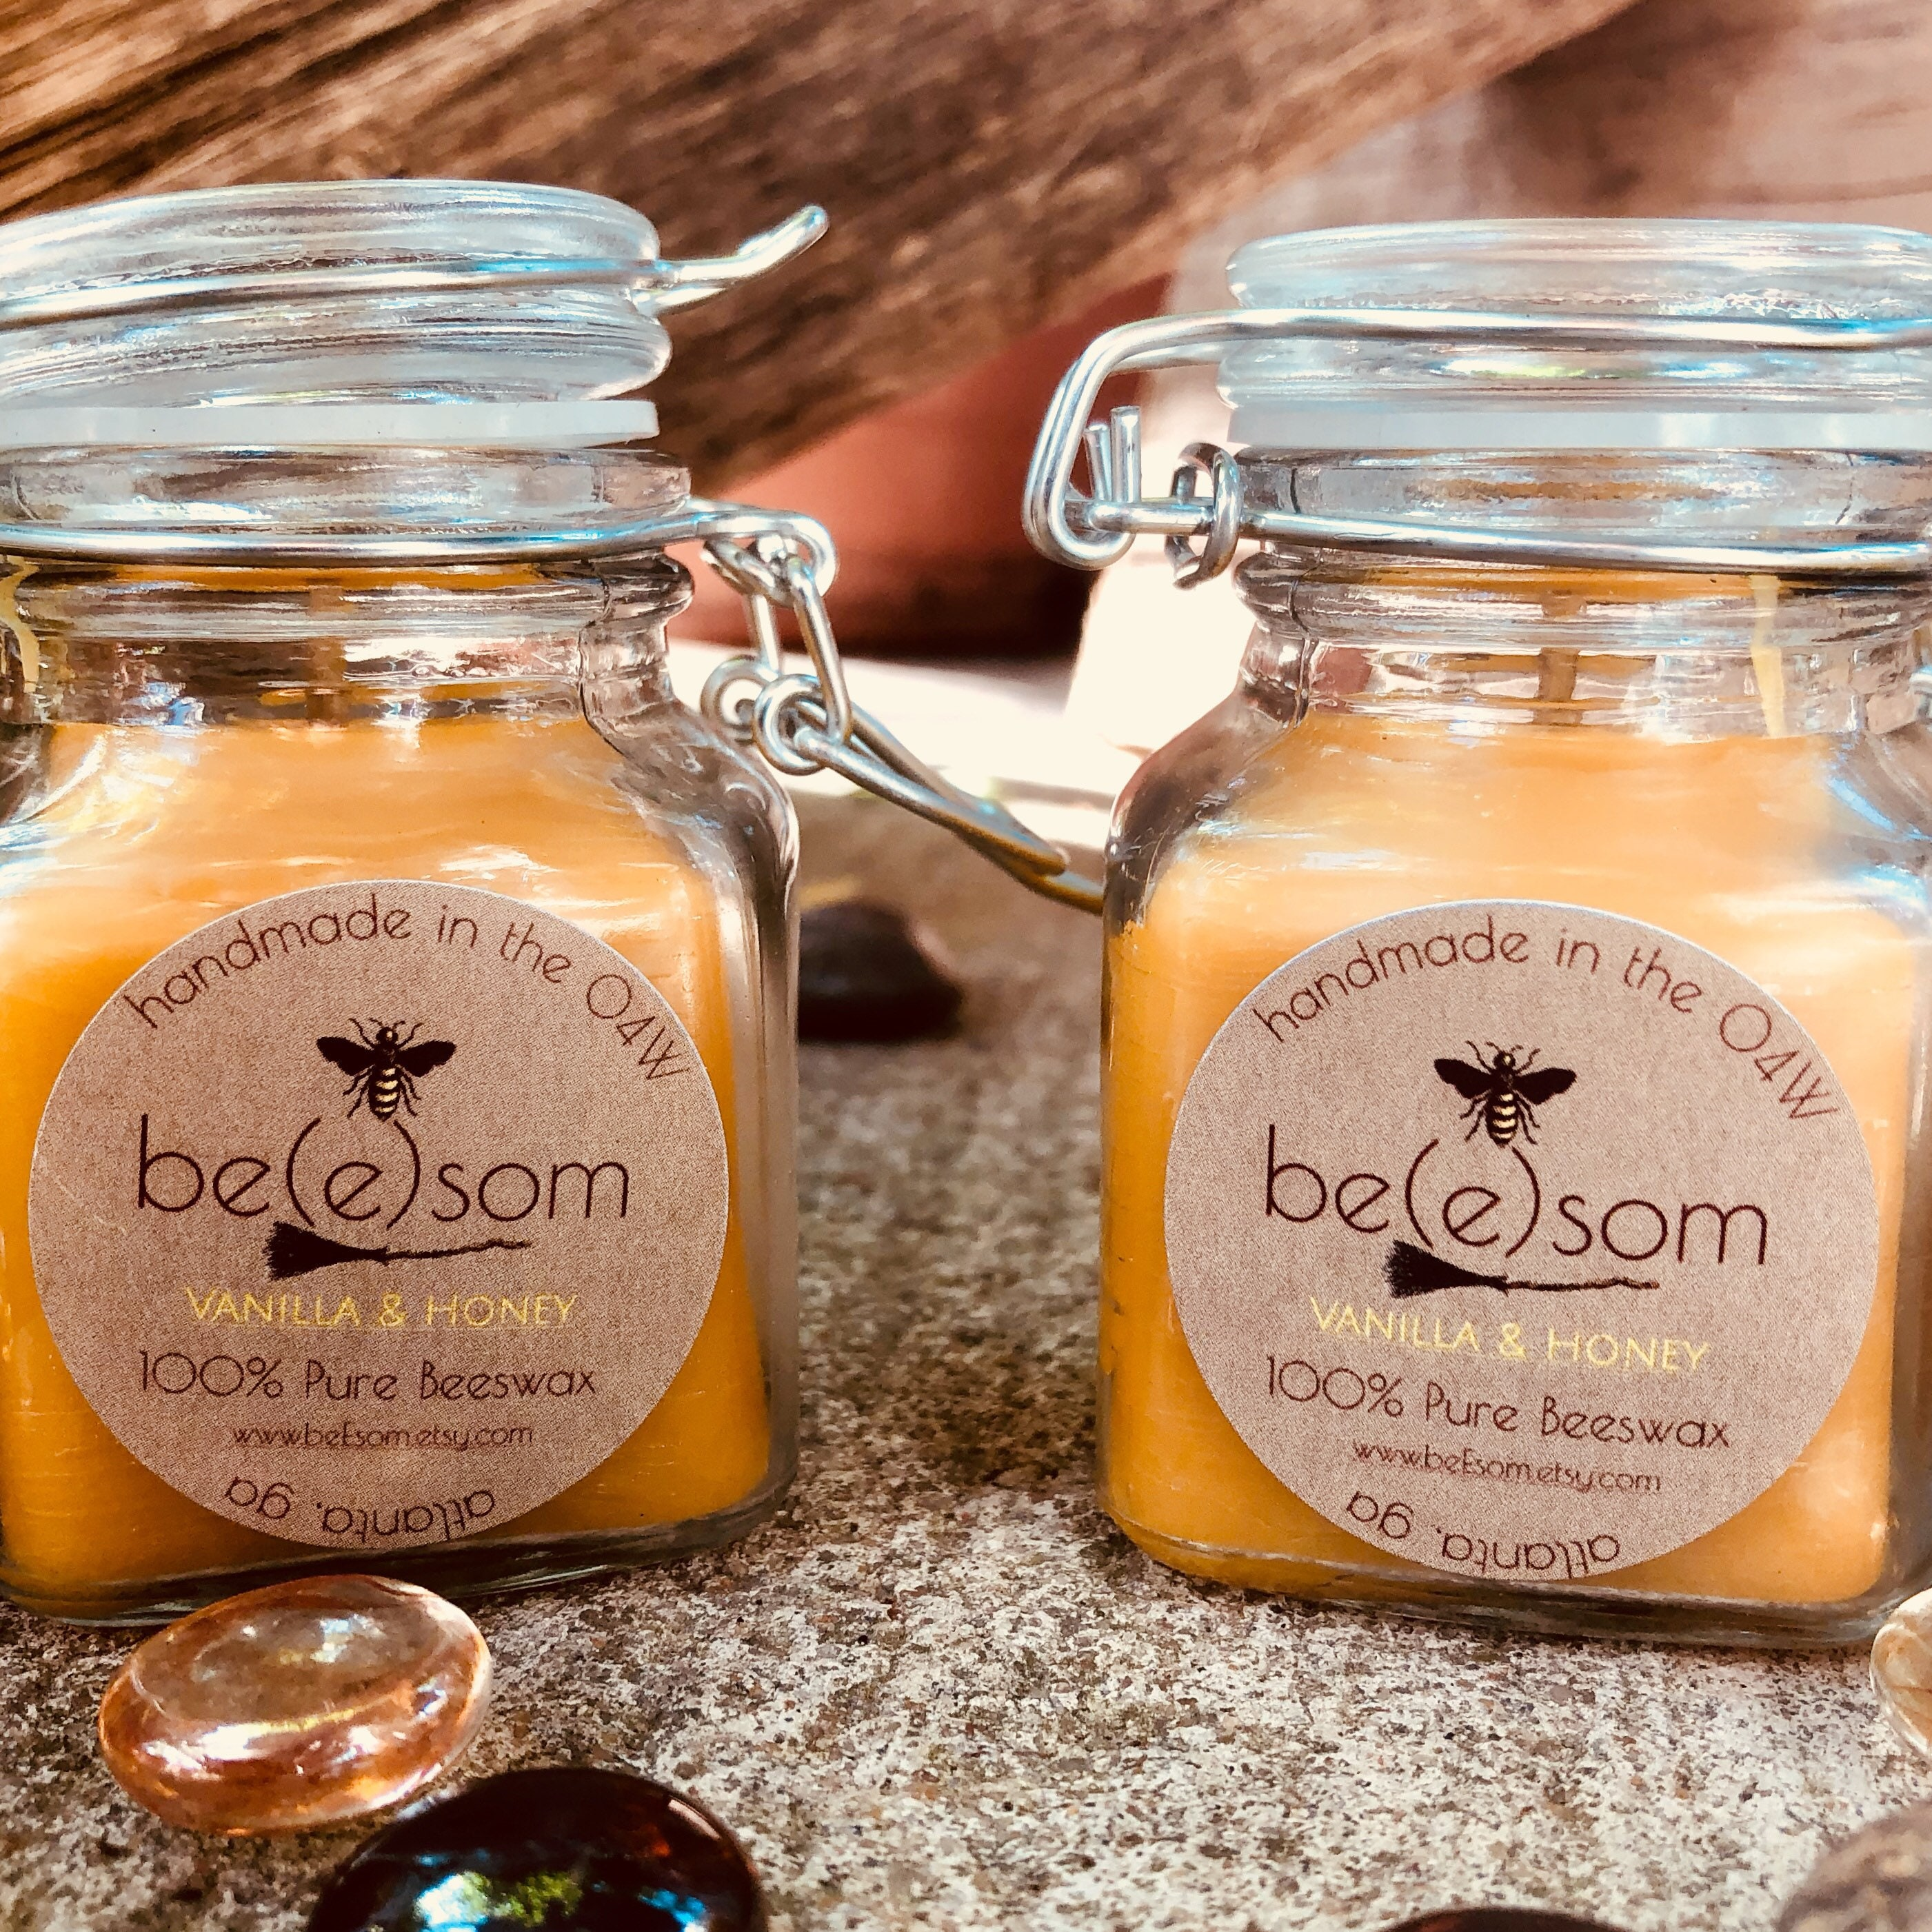 Cute Little Glass Jar Hand Poured Beeswax Honey Candles Free Shipping!